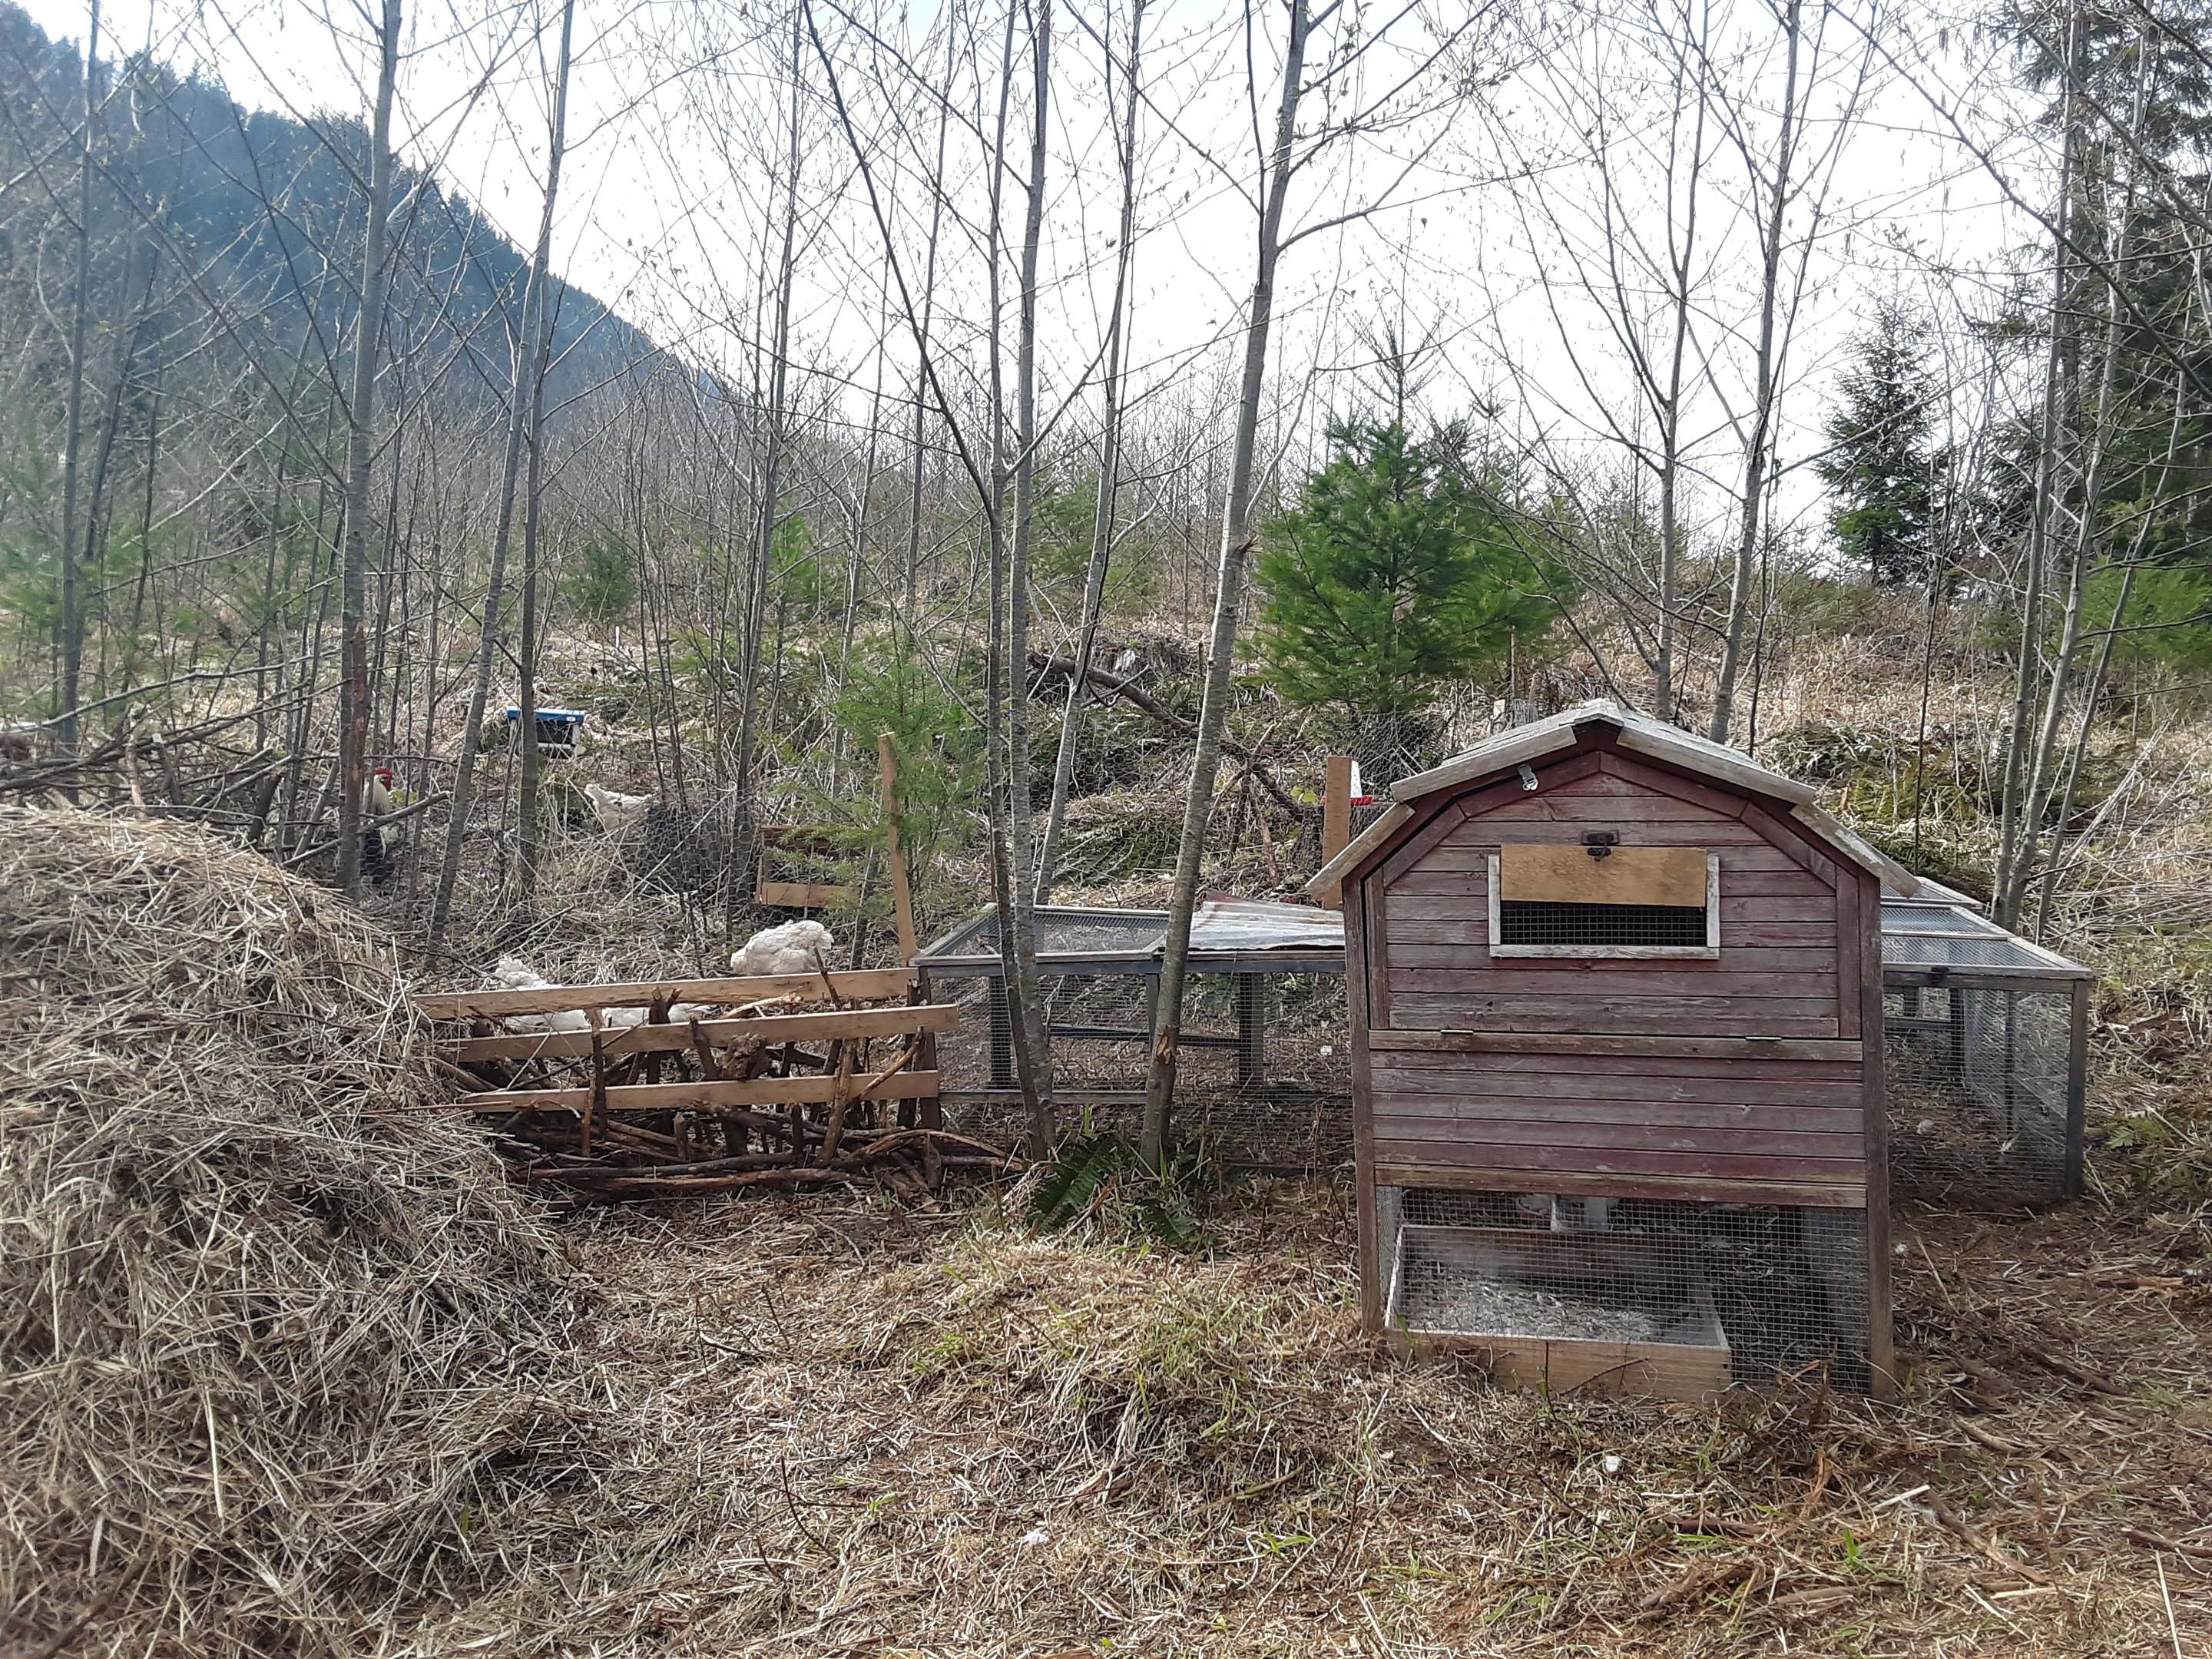 front-view-of-chicken-house-jpg.52737_Off-Grid homesteadin' wing'n it yeh_Alternative Housing_Squat the Planet_12:24 PM